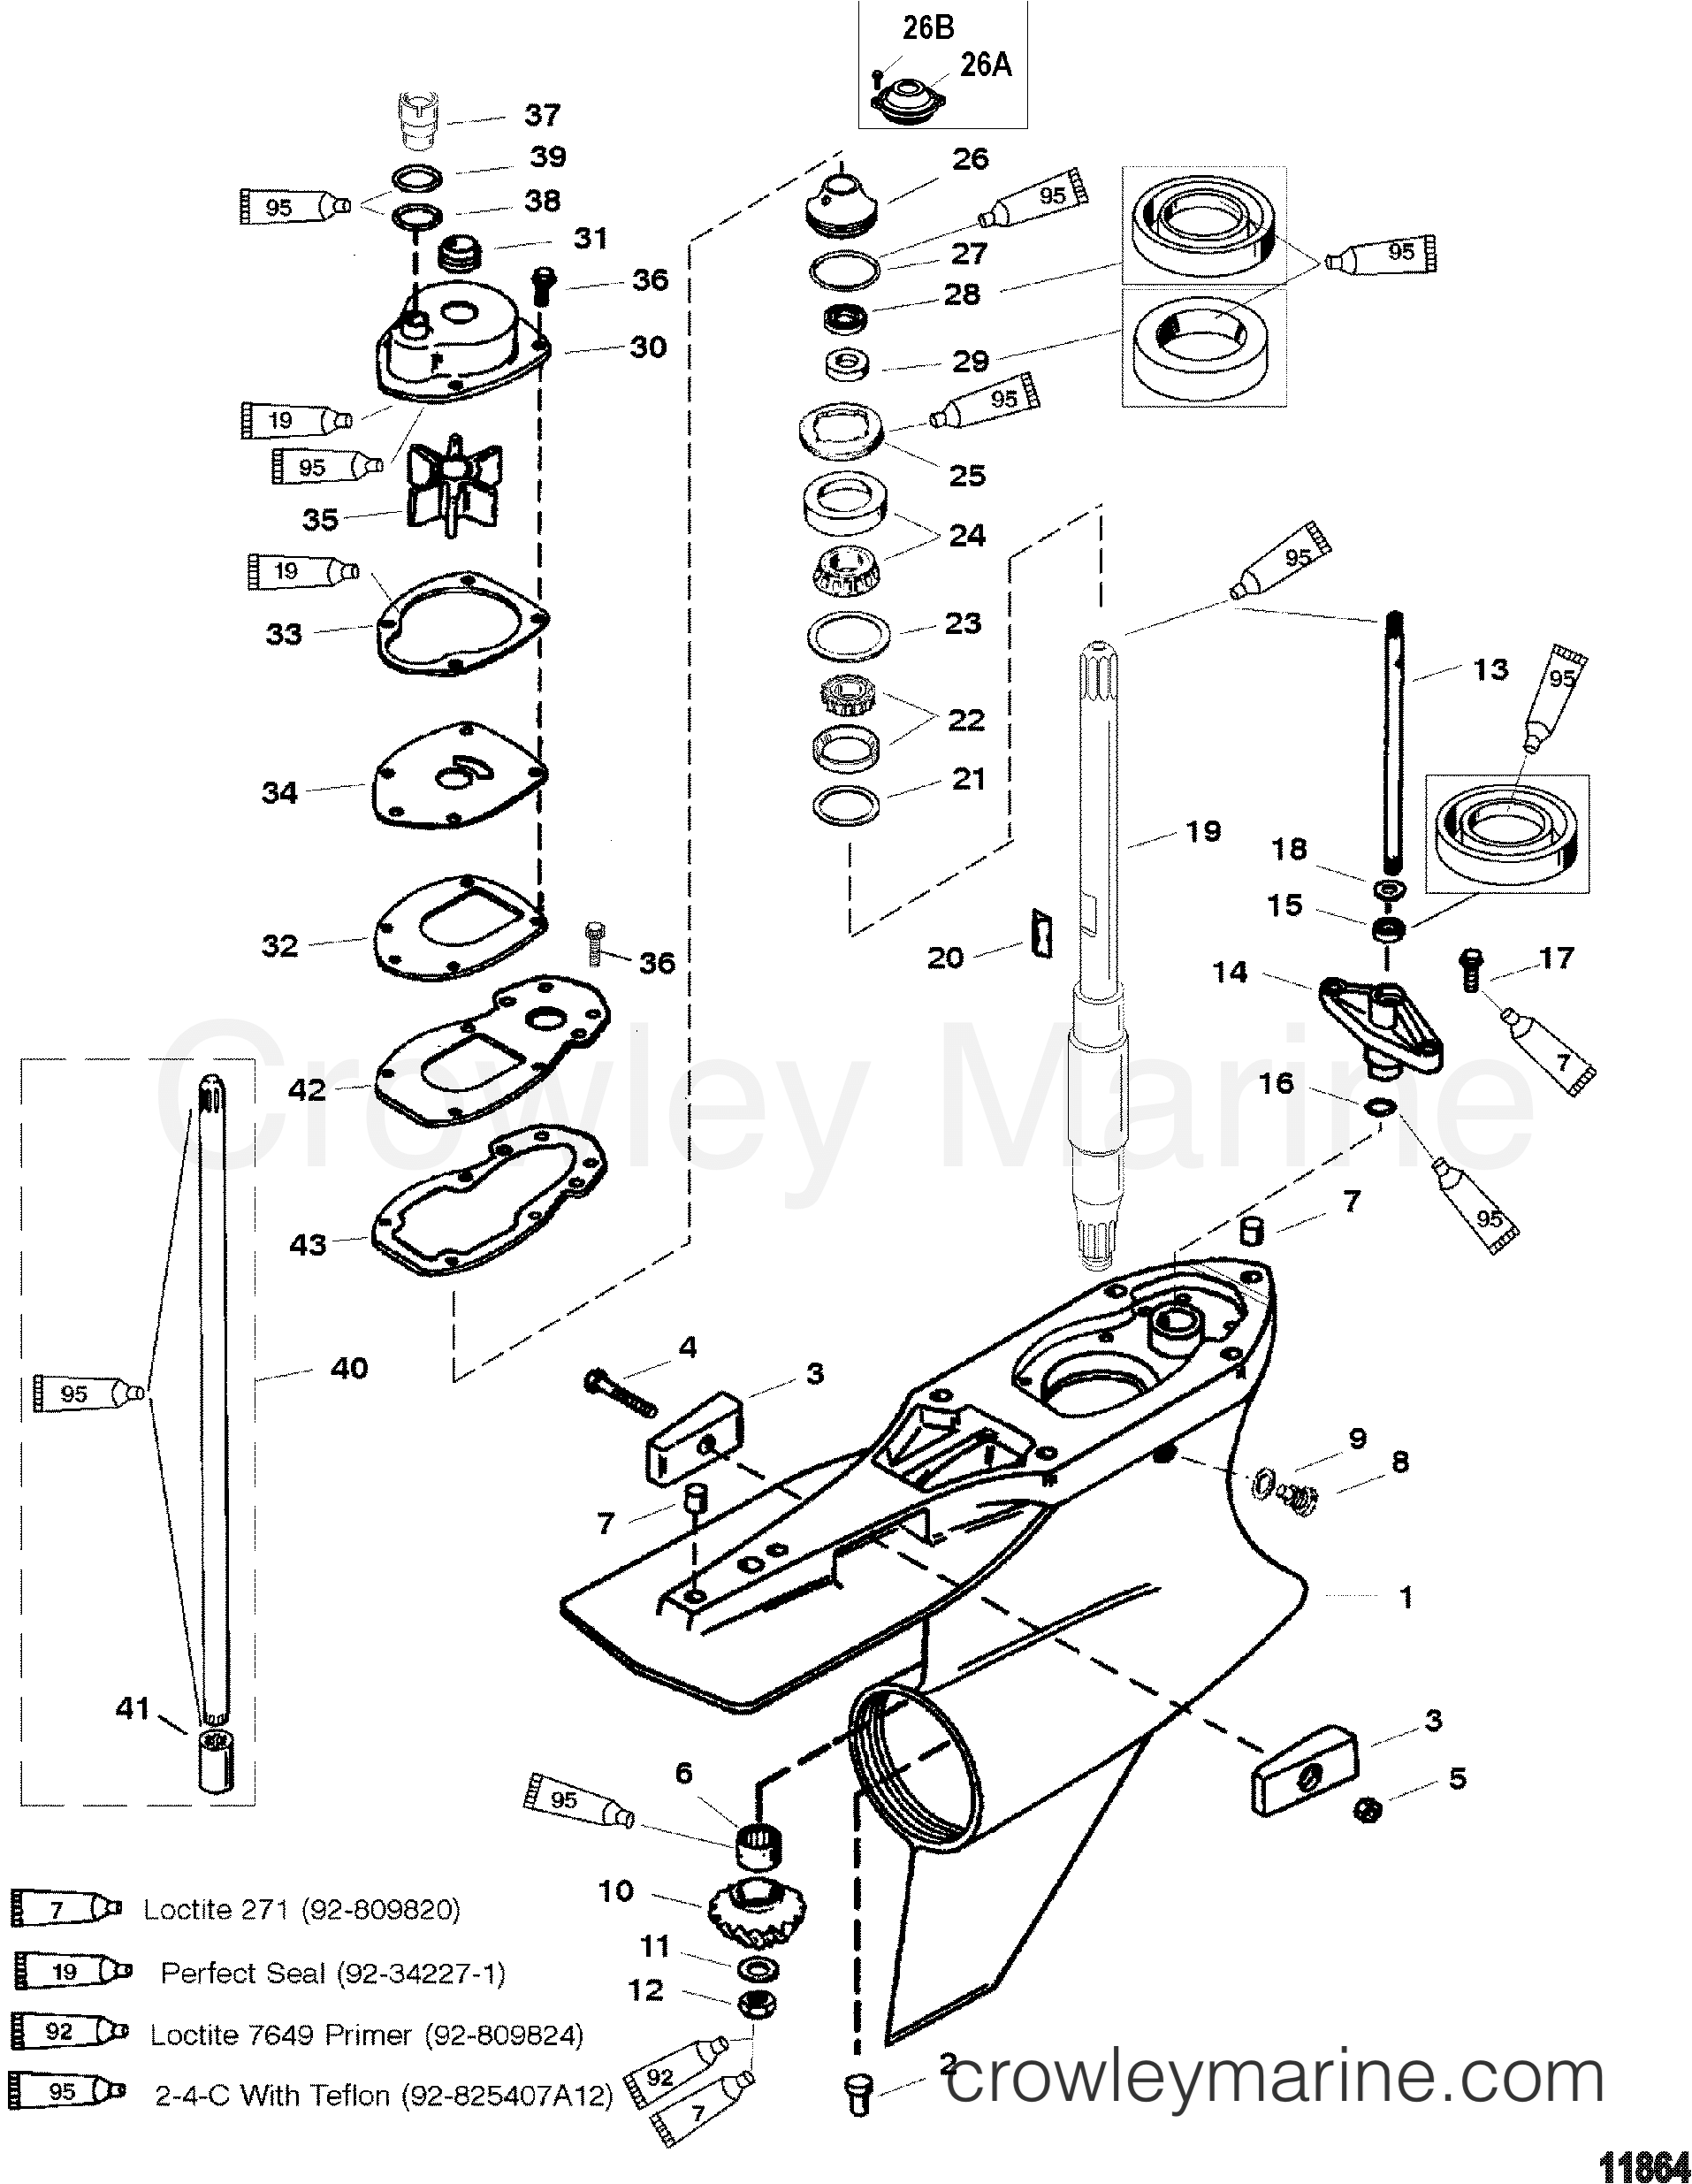 1990 9 Hp Evinrude Wiring Diagram Wiring Diagram